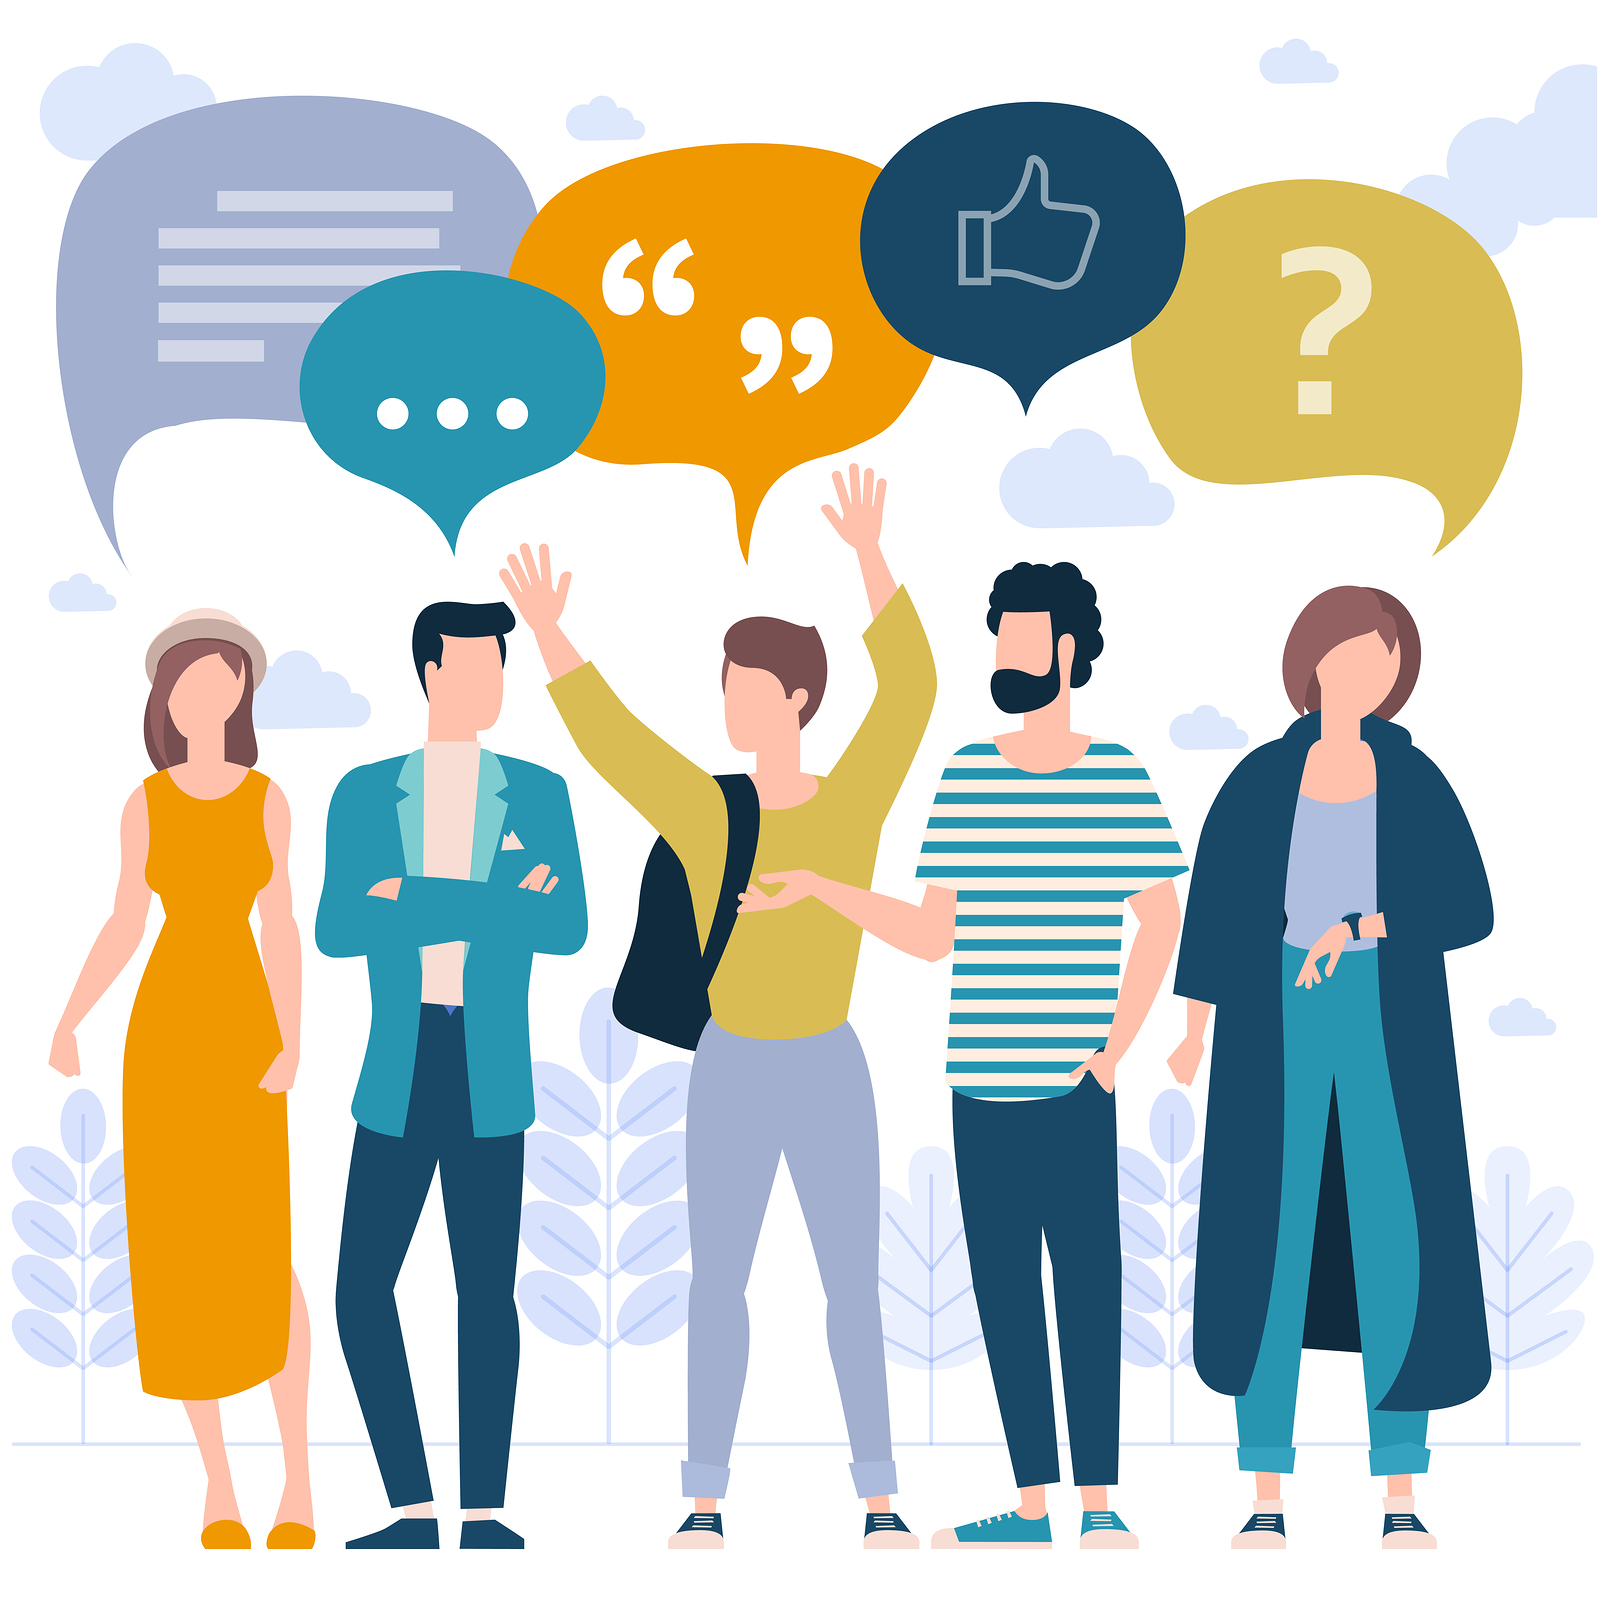 Flat design trendy color vector people with blank speech bubbles. Different characters, styles and professions, standing together diverse acting poses collection.